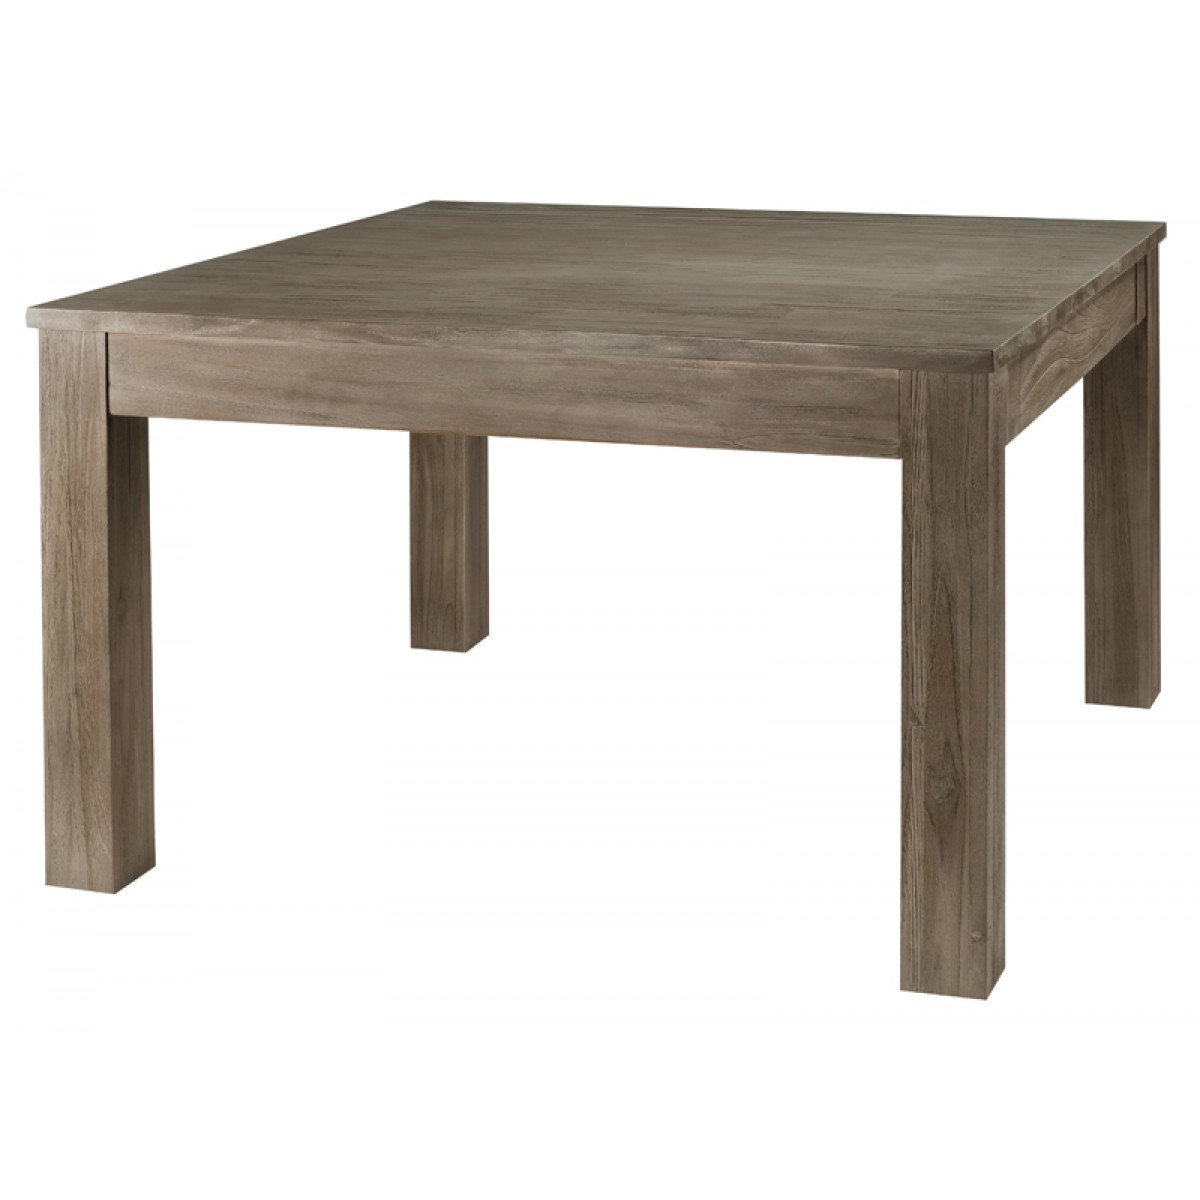 Table carr e en teck gris 120 cm 1 allonge 50 cm cosmos zago store - Table grise avec rallonge ...